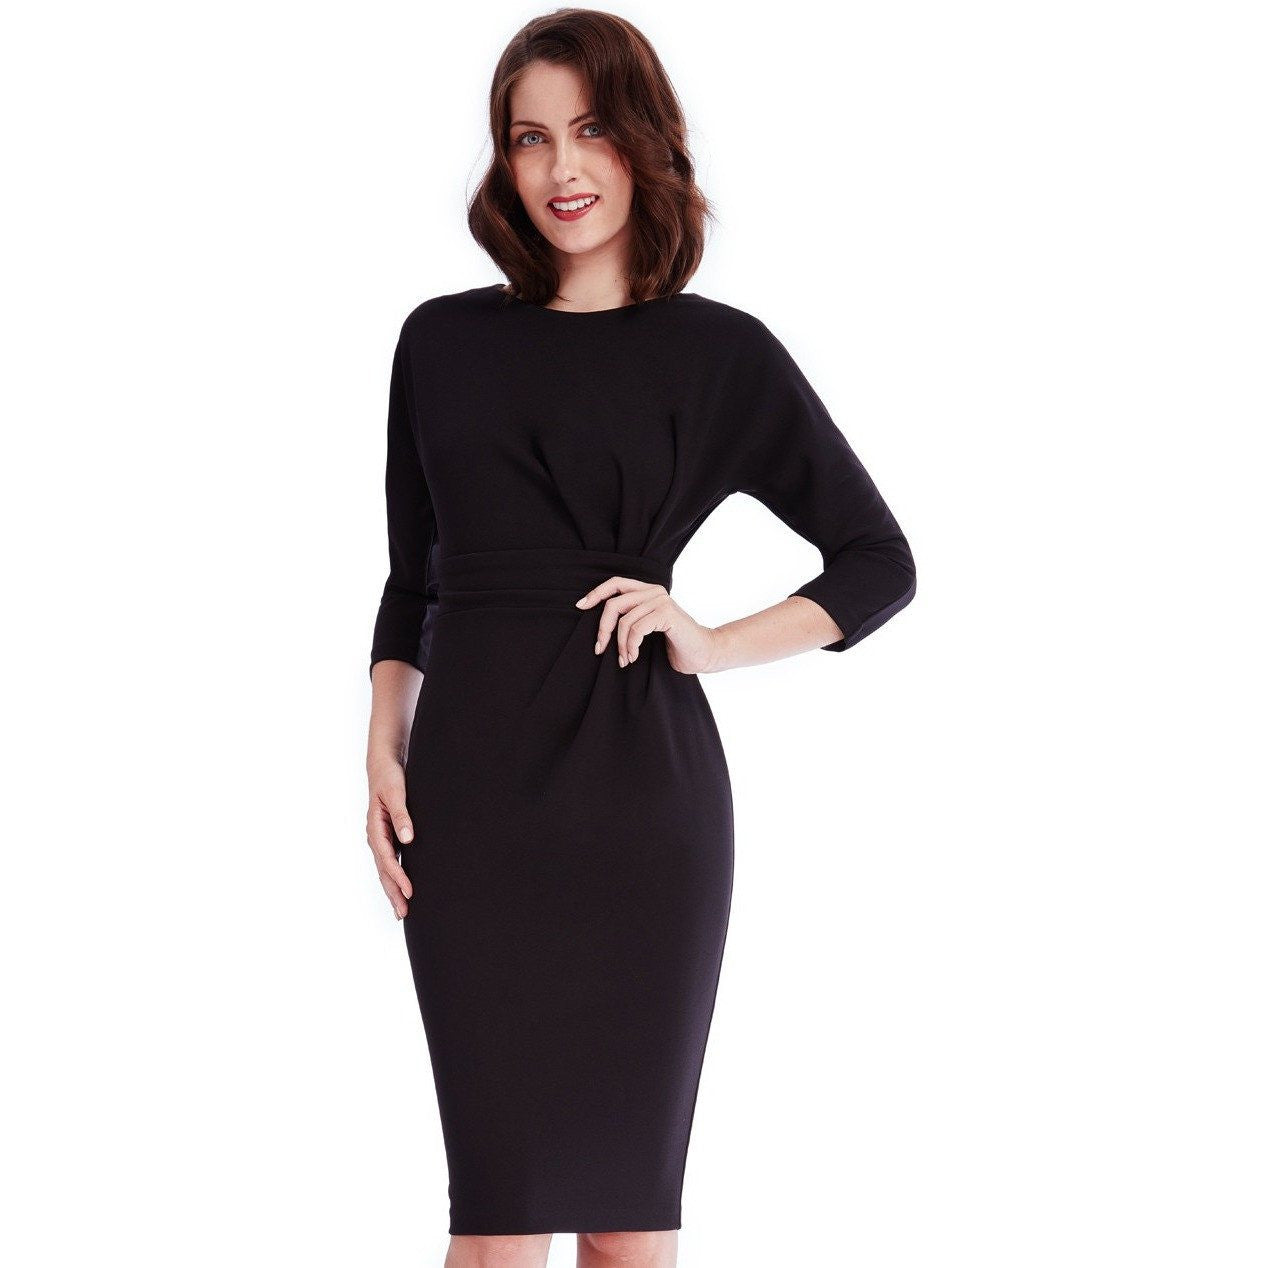 Black dress quarter sleeve - Black Dress With Pleated Detail In The Waist Three Quarter Sleeves And Thick Waistband